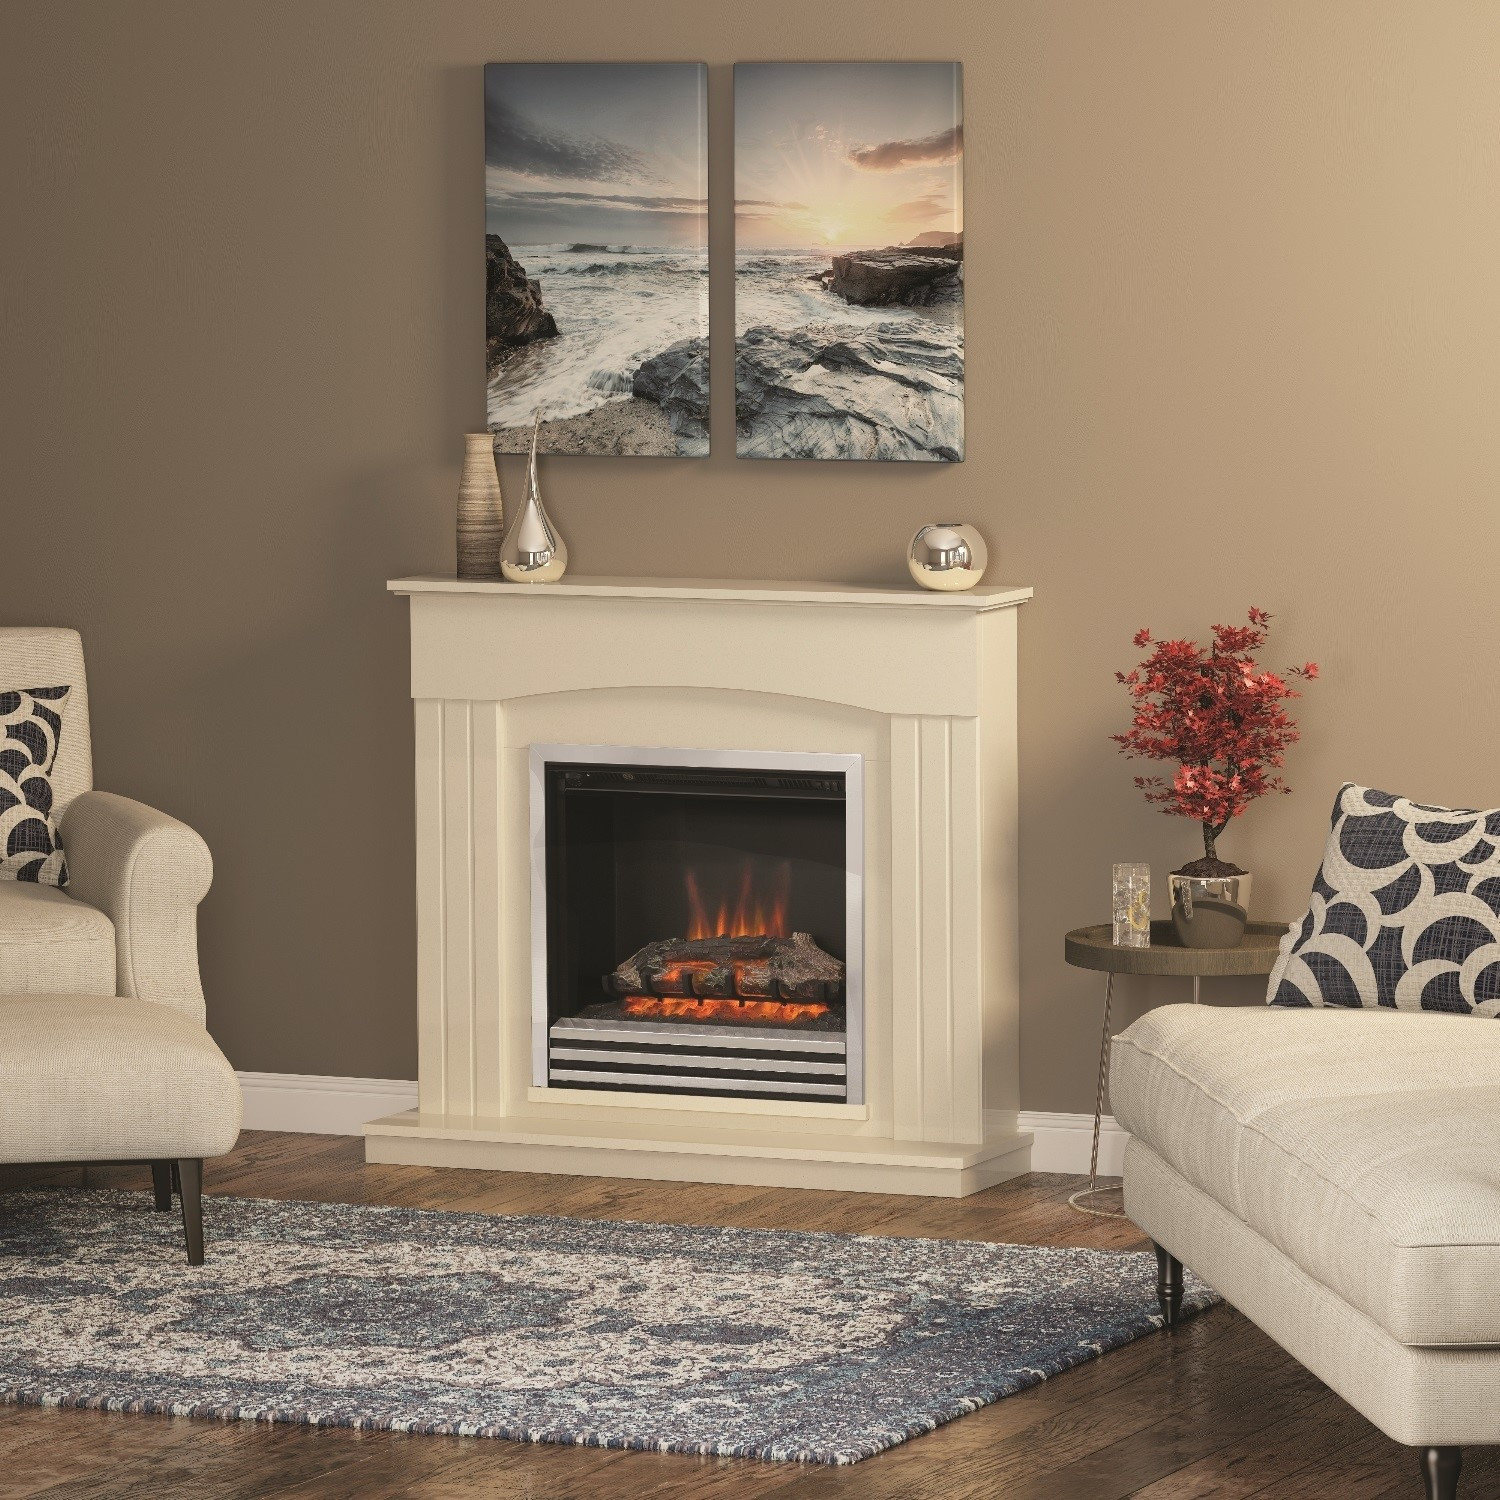 Be Modern Linmere Almond Stone Effect Electric Fireplace Insert